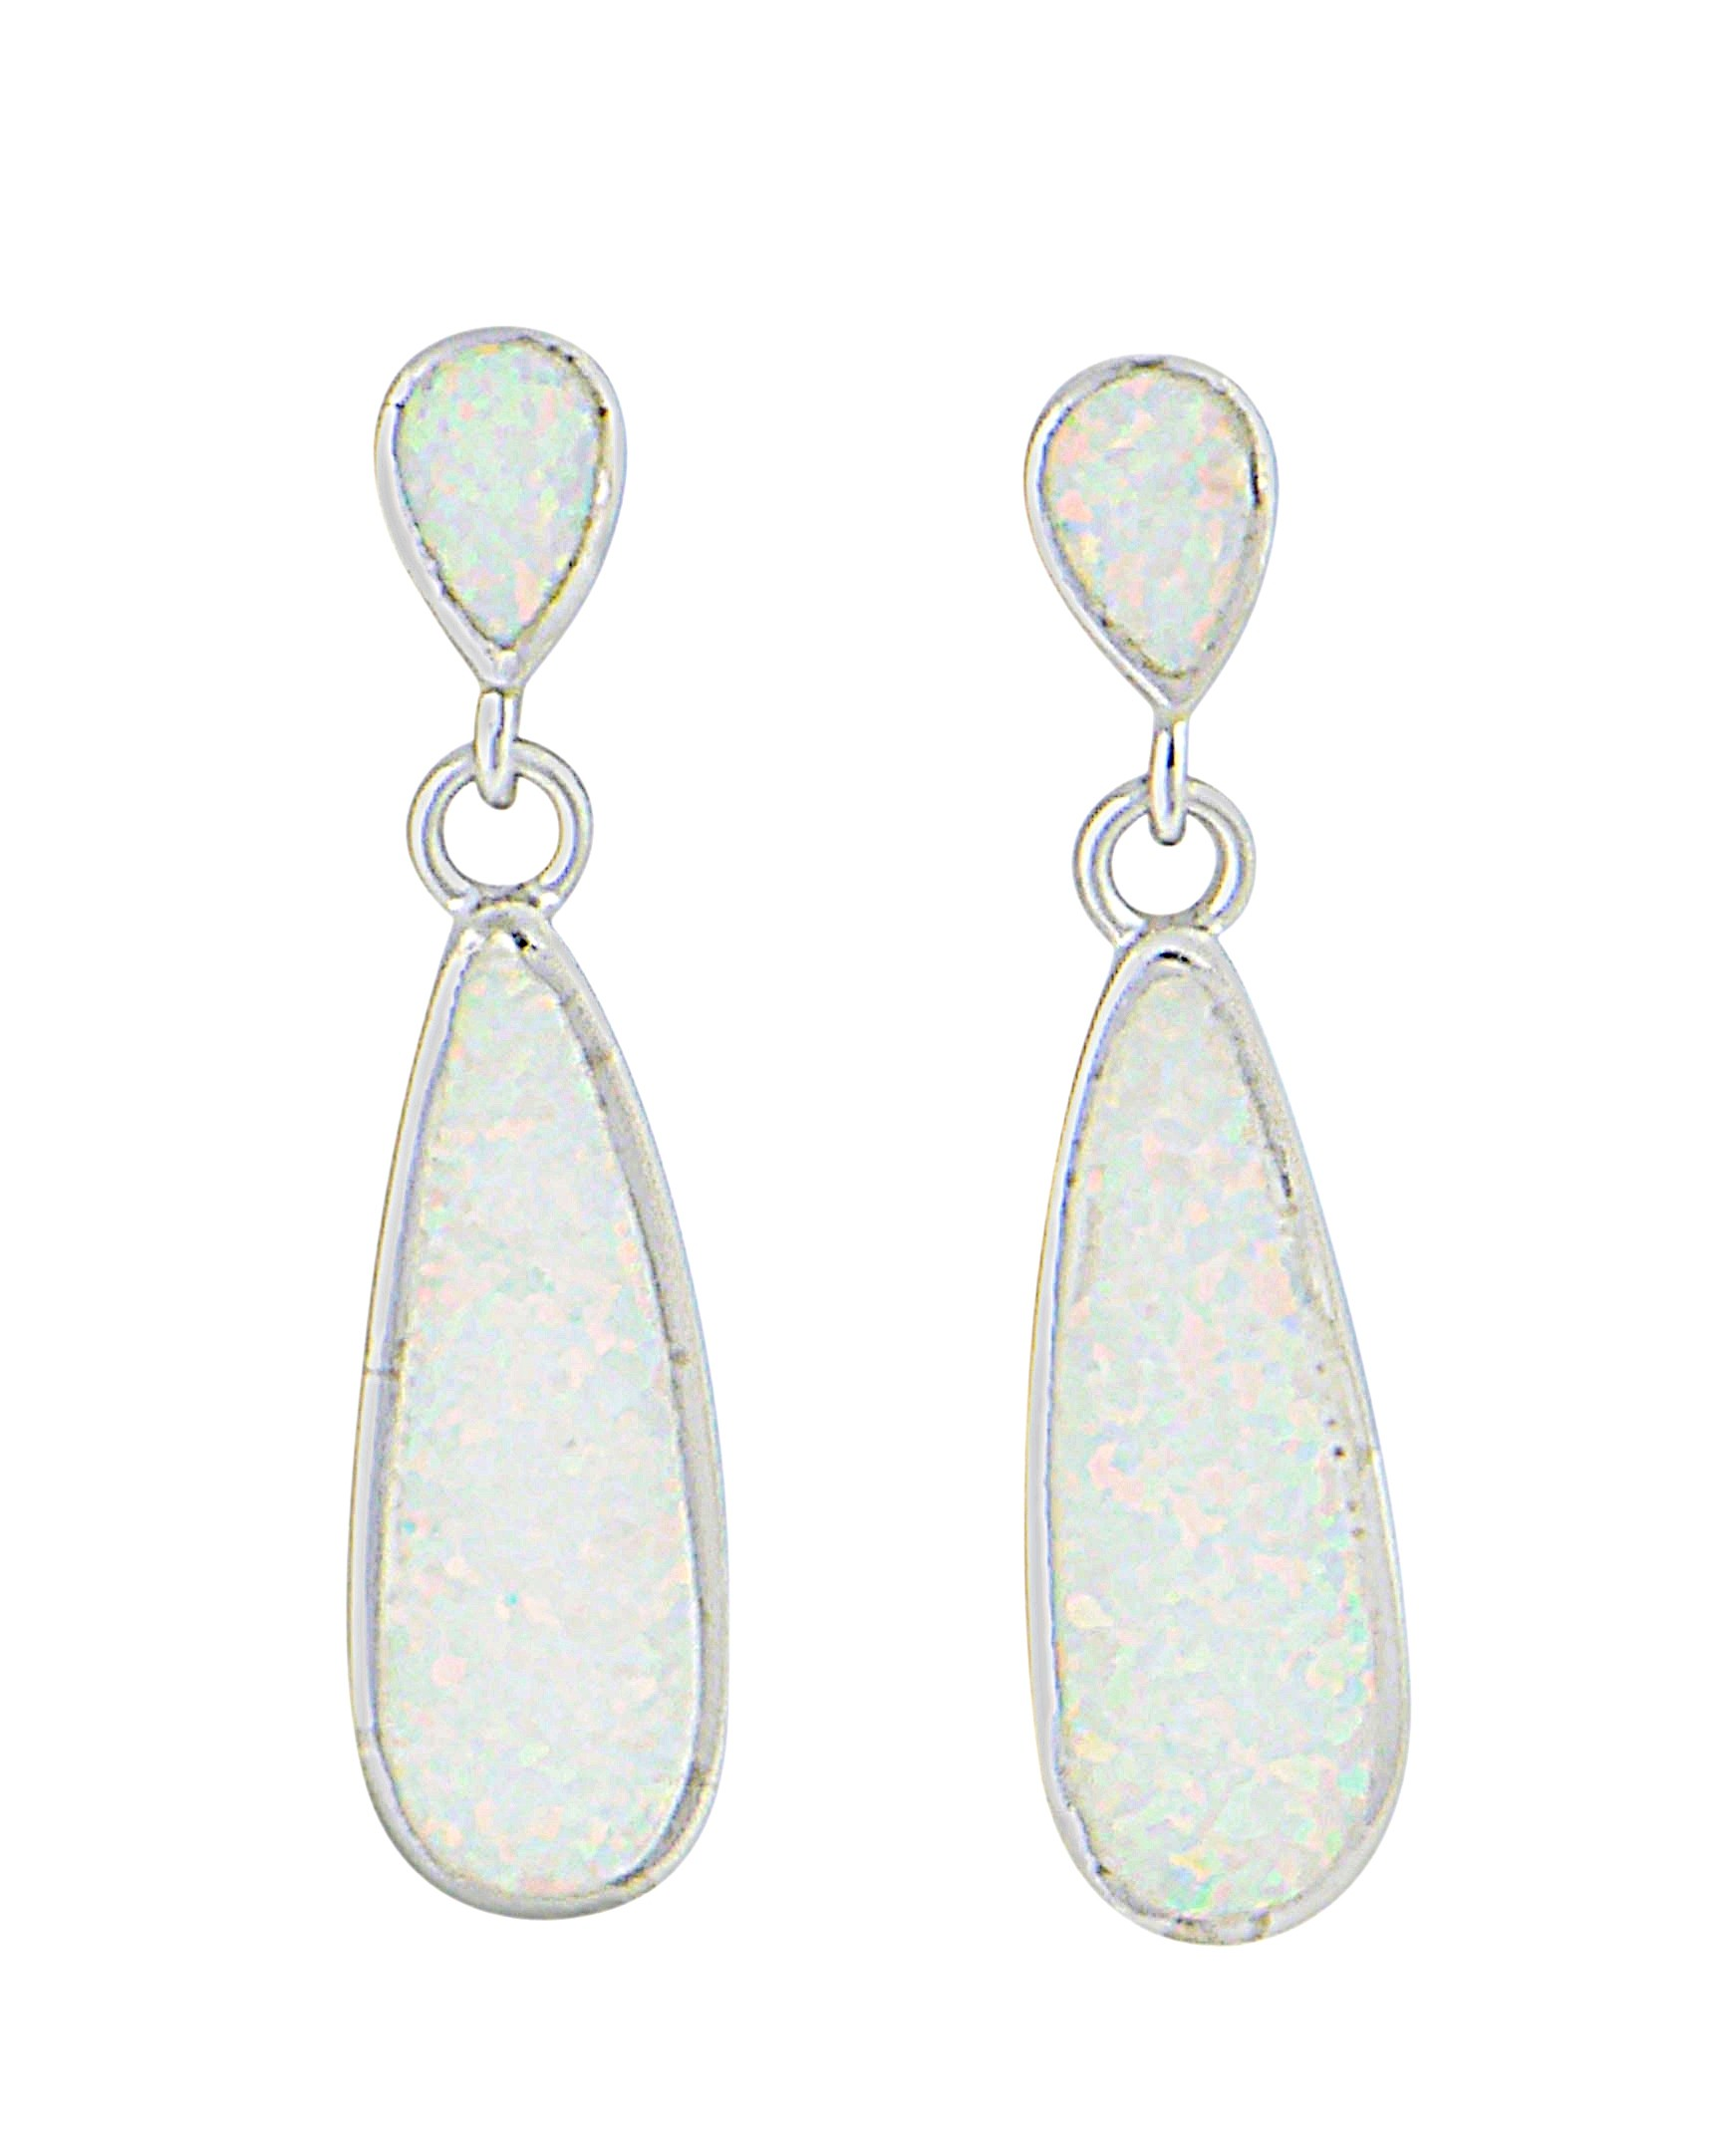 Elongated Teardrop Opal Silver Stud Earrings | The Opal